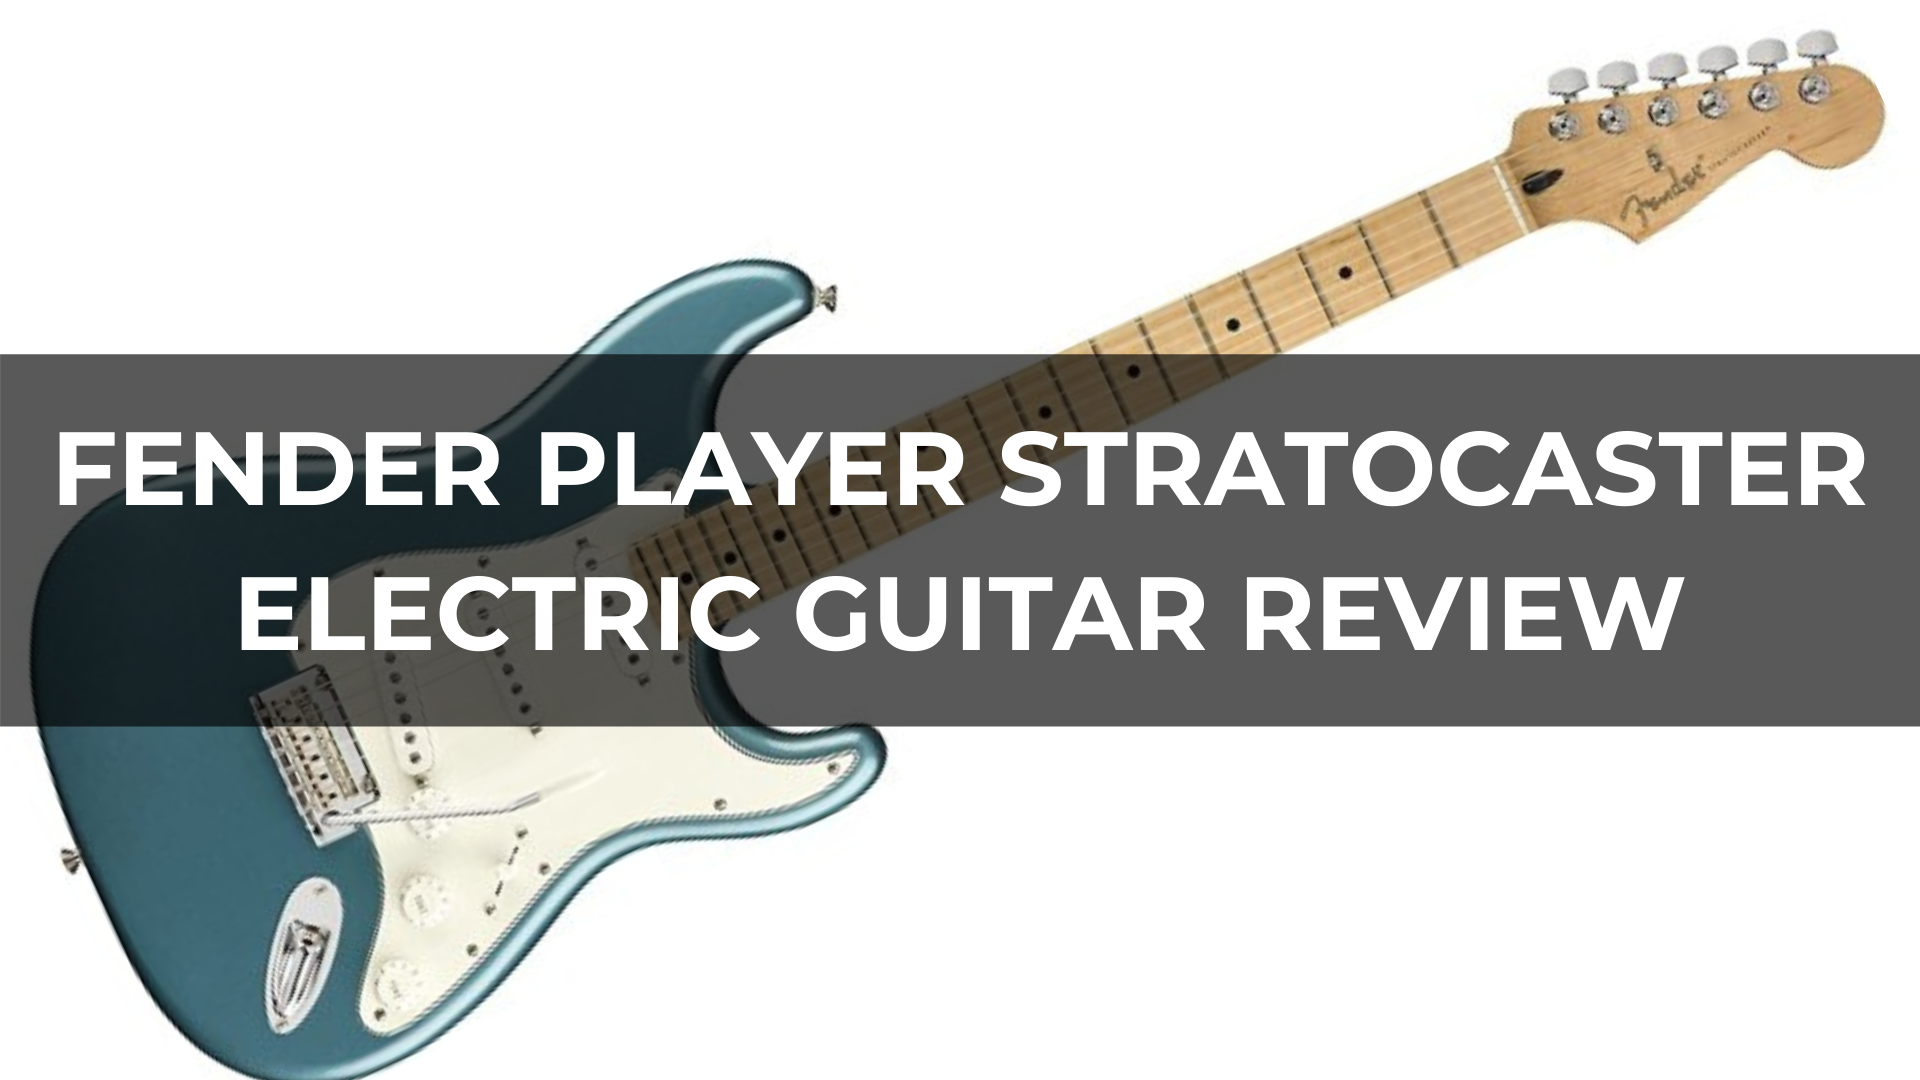 Fender Player Stratocaster Electric Guitar Review